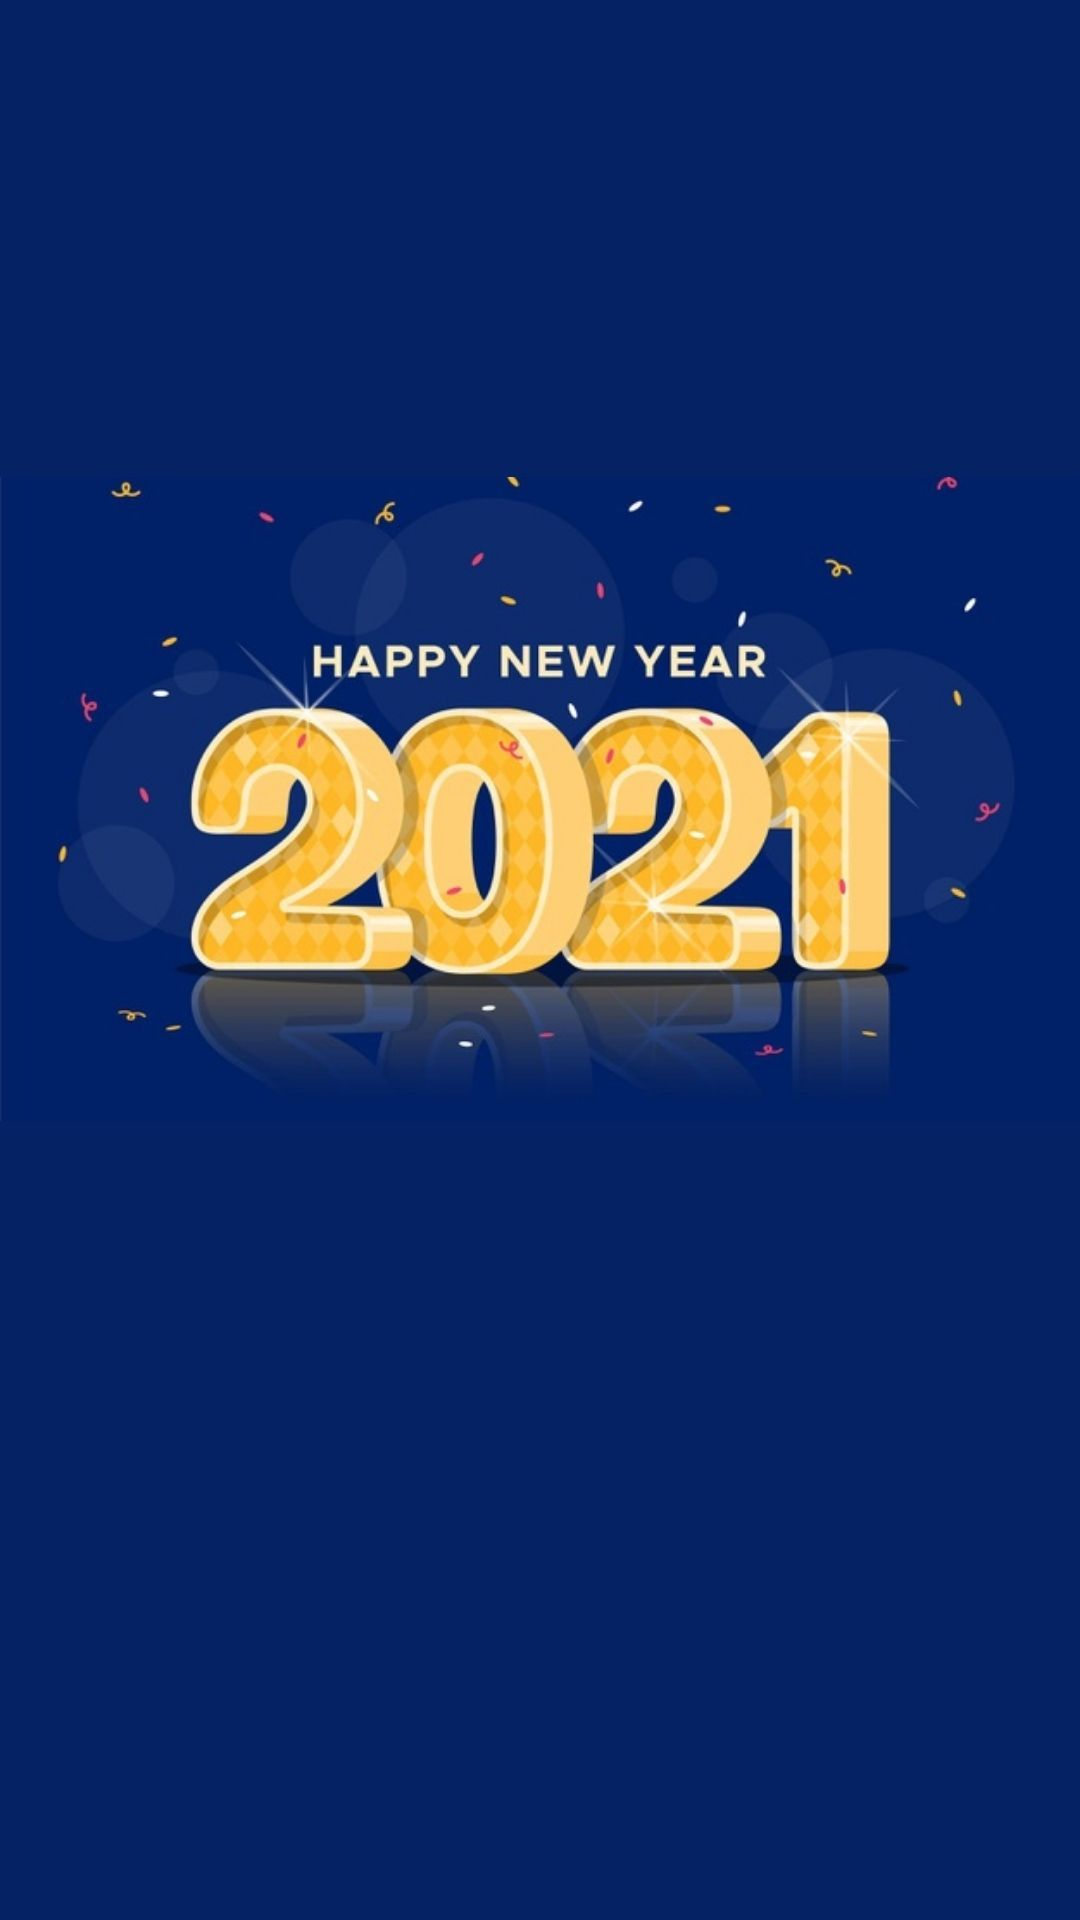 2021 Year Wallpaper Iphone New Year Golden Phone Background New Year Wallpaper Happy New Year Wallpaper Happy New Year Images